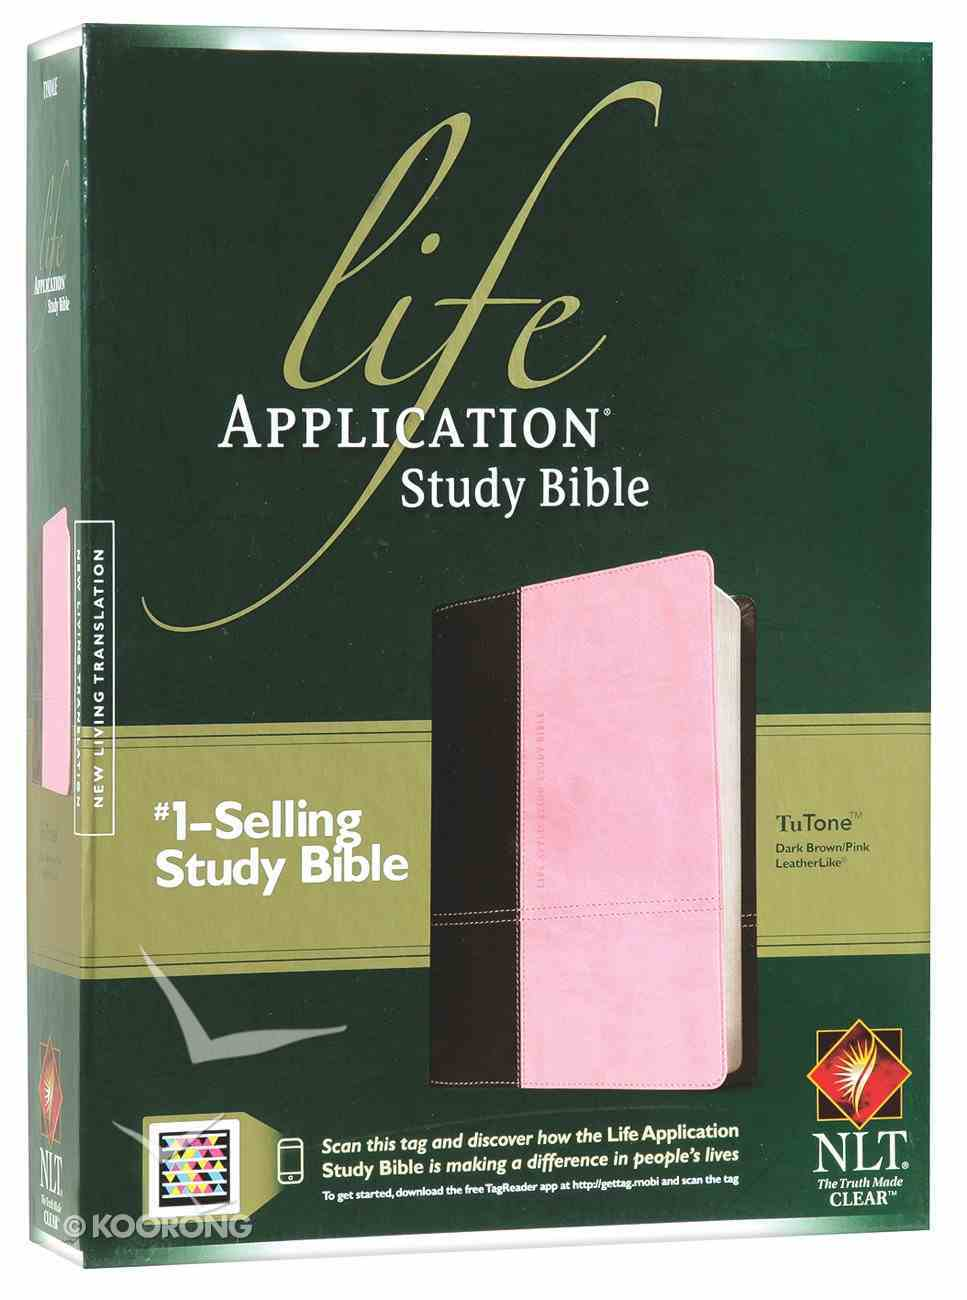 NLT Life Application Study Bible Dark Brown/Pink (Red Letter Edition) Imitation Leather